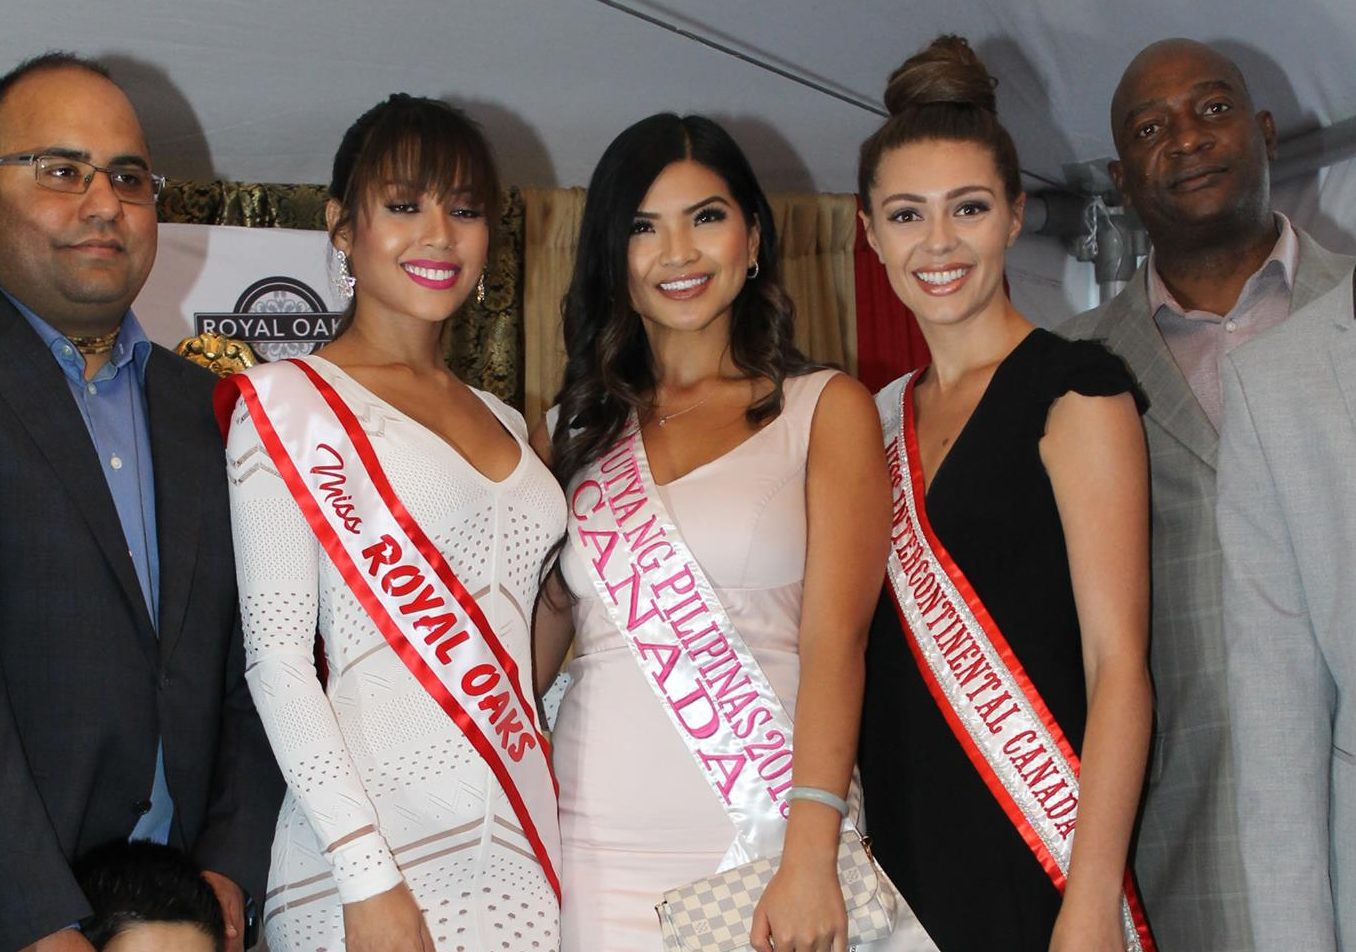 beauty queens in Canada, 2017 - model competition finalists